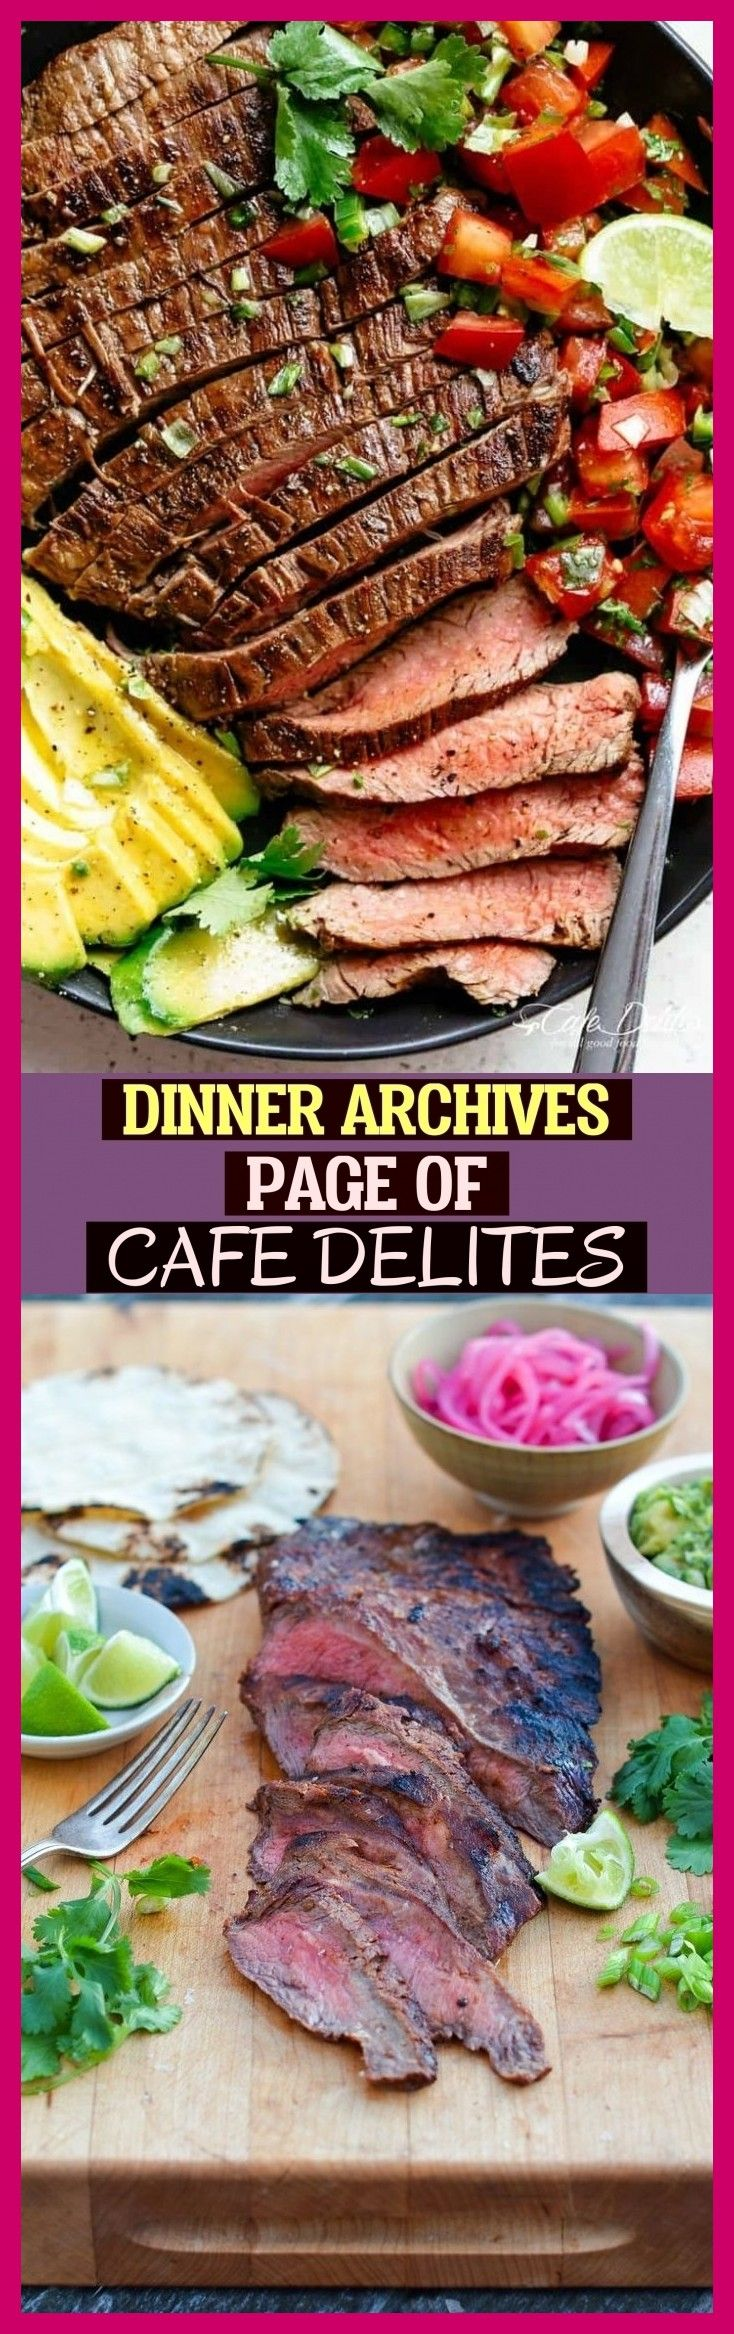 Dinner Archives - Page Of - Cafe Delites